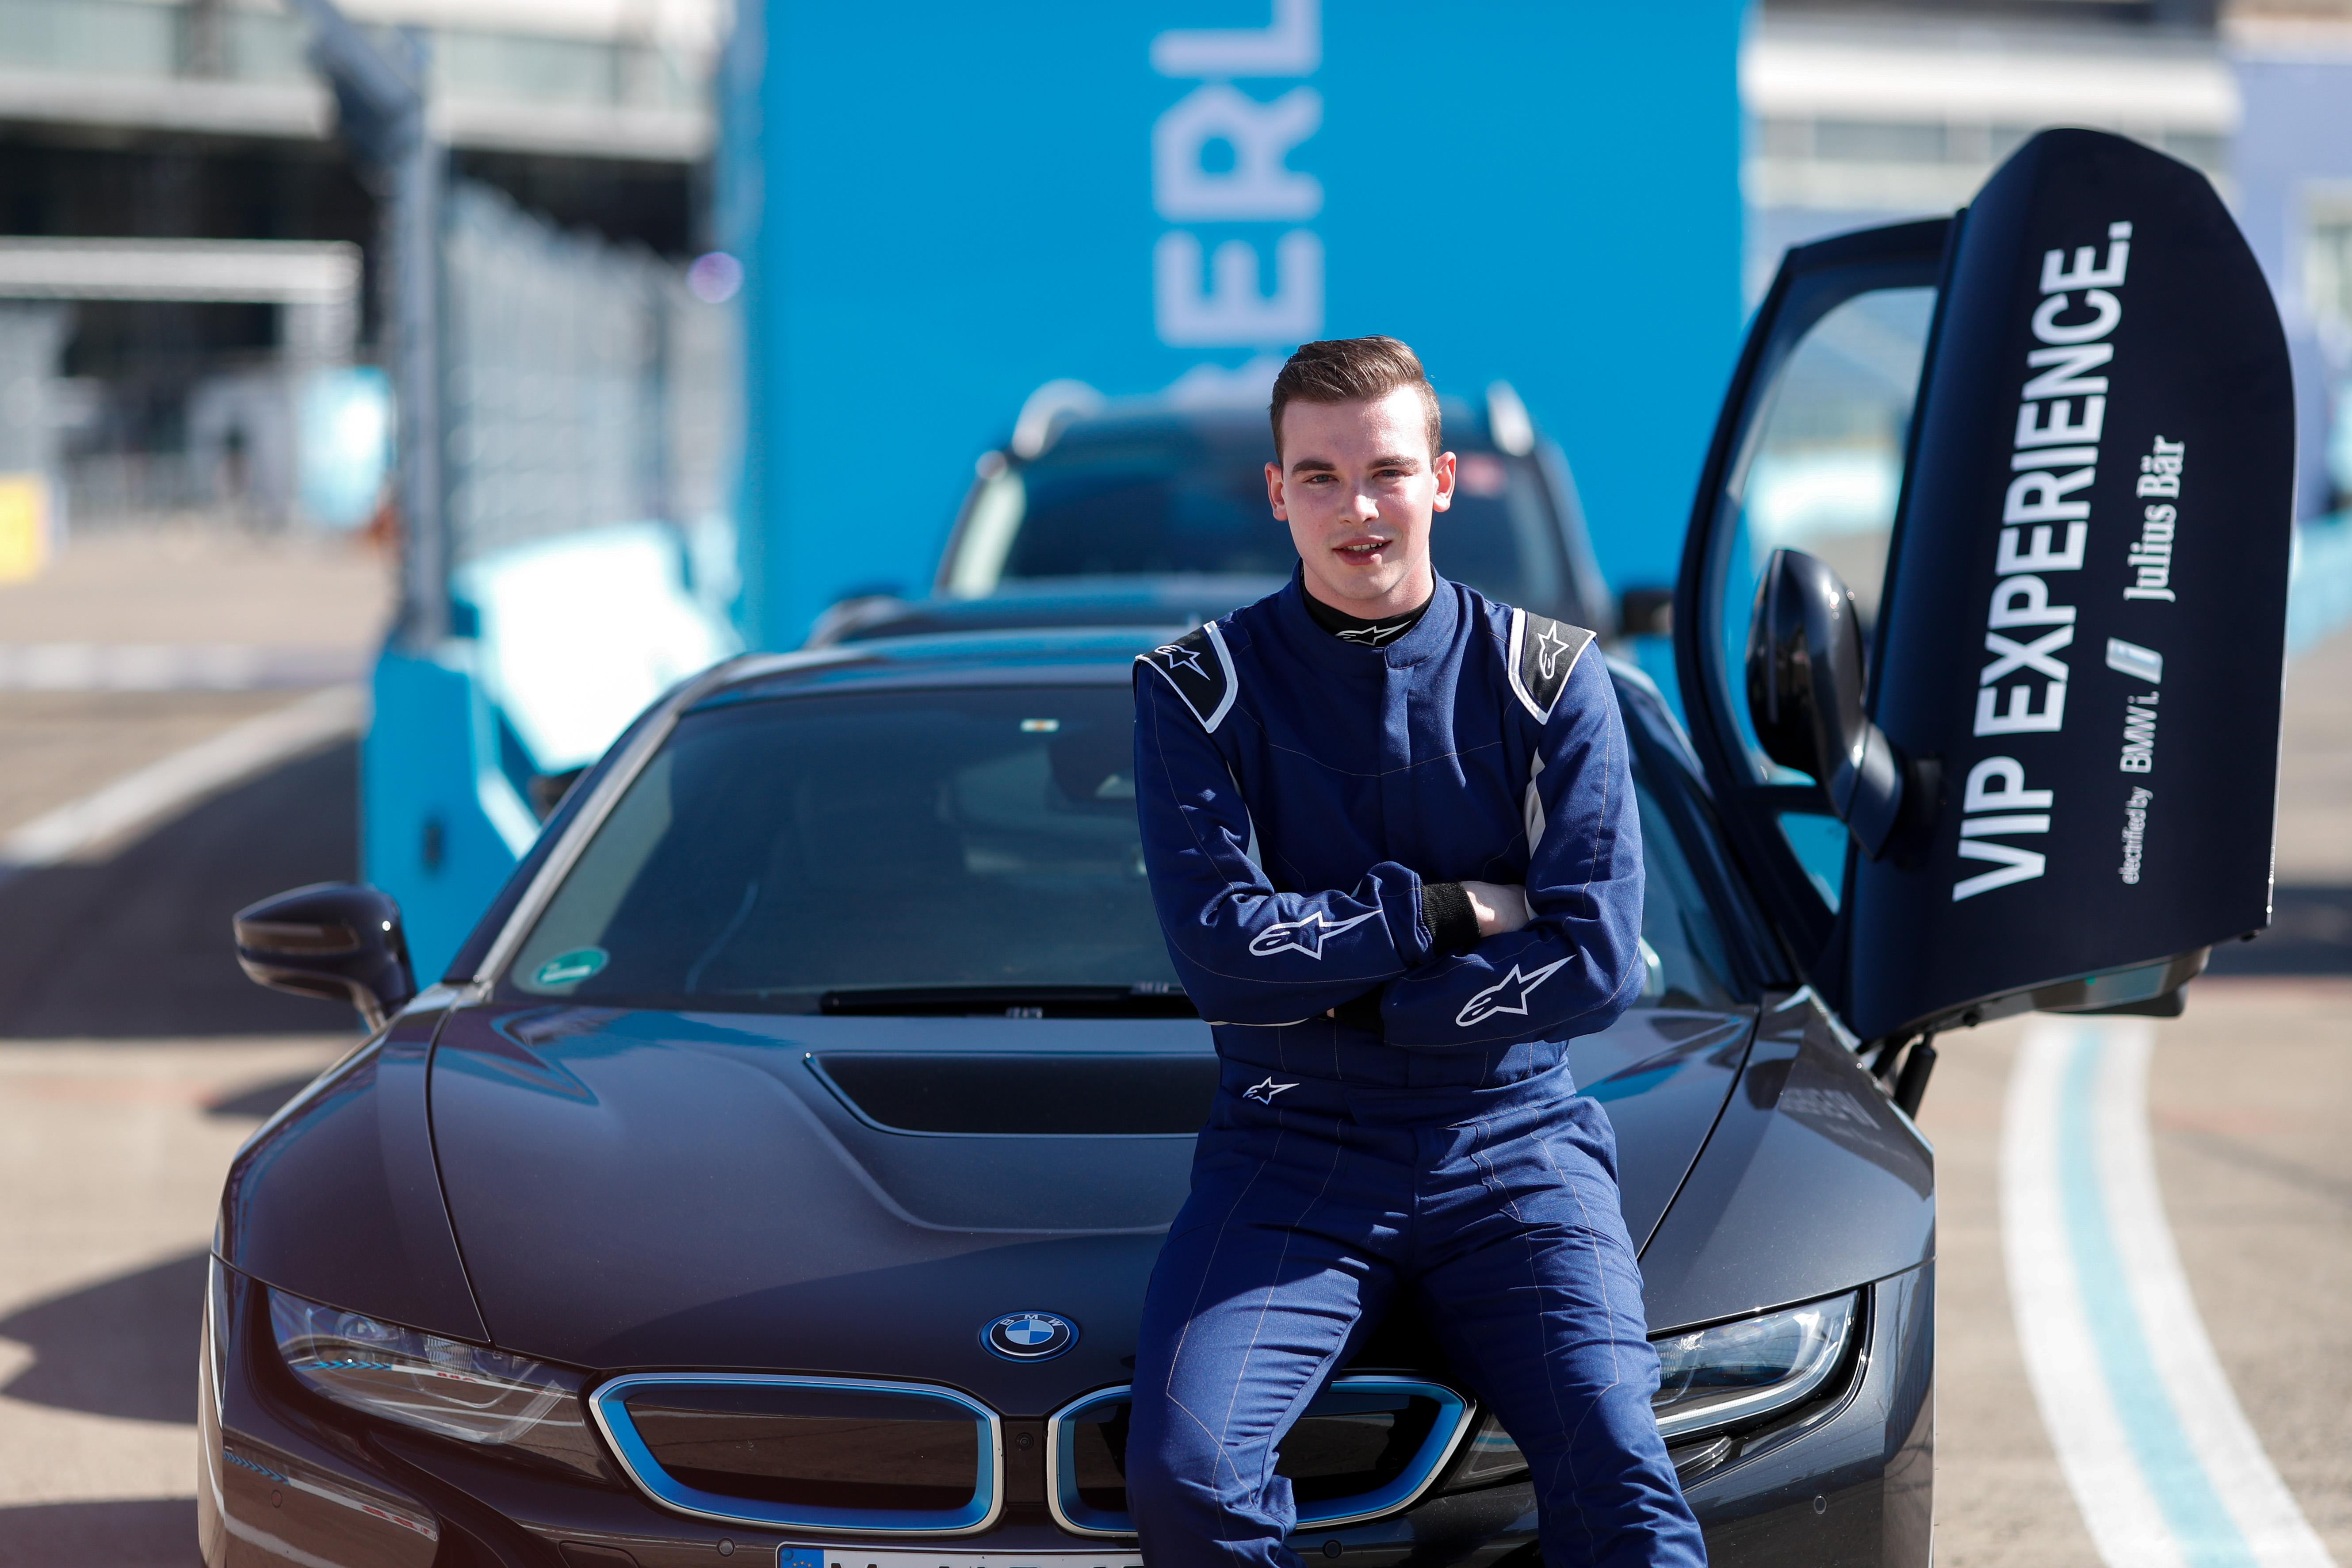 I began my experience in a BMW i8